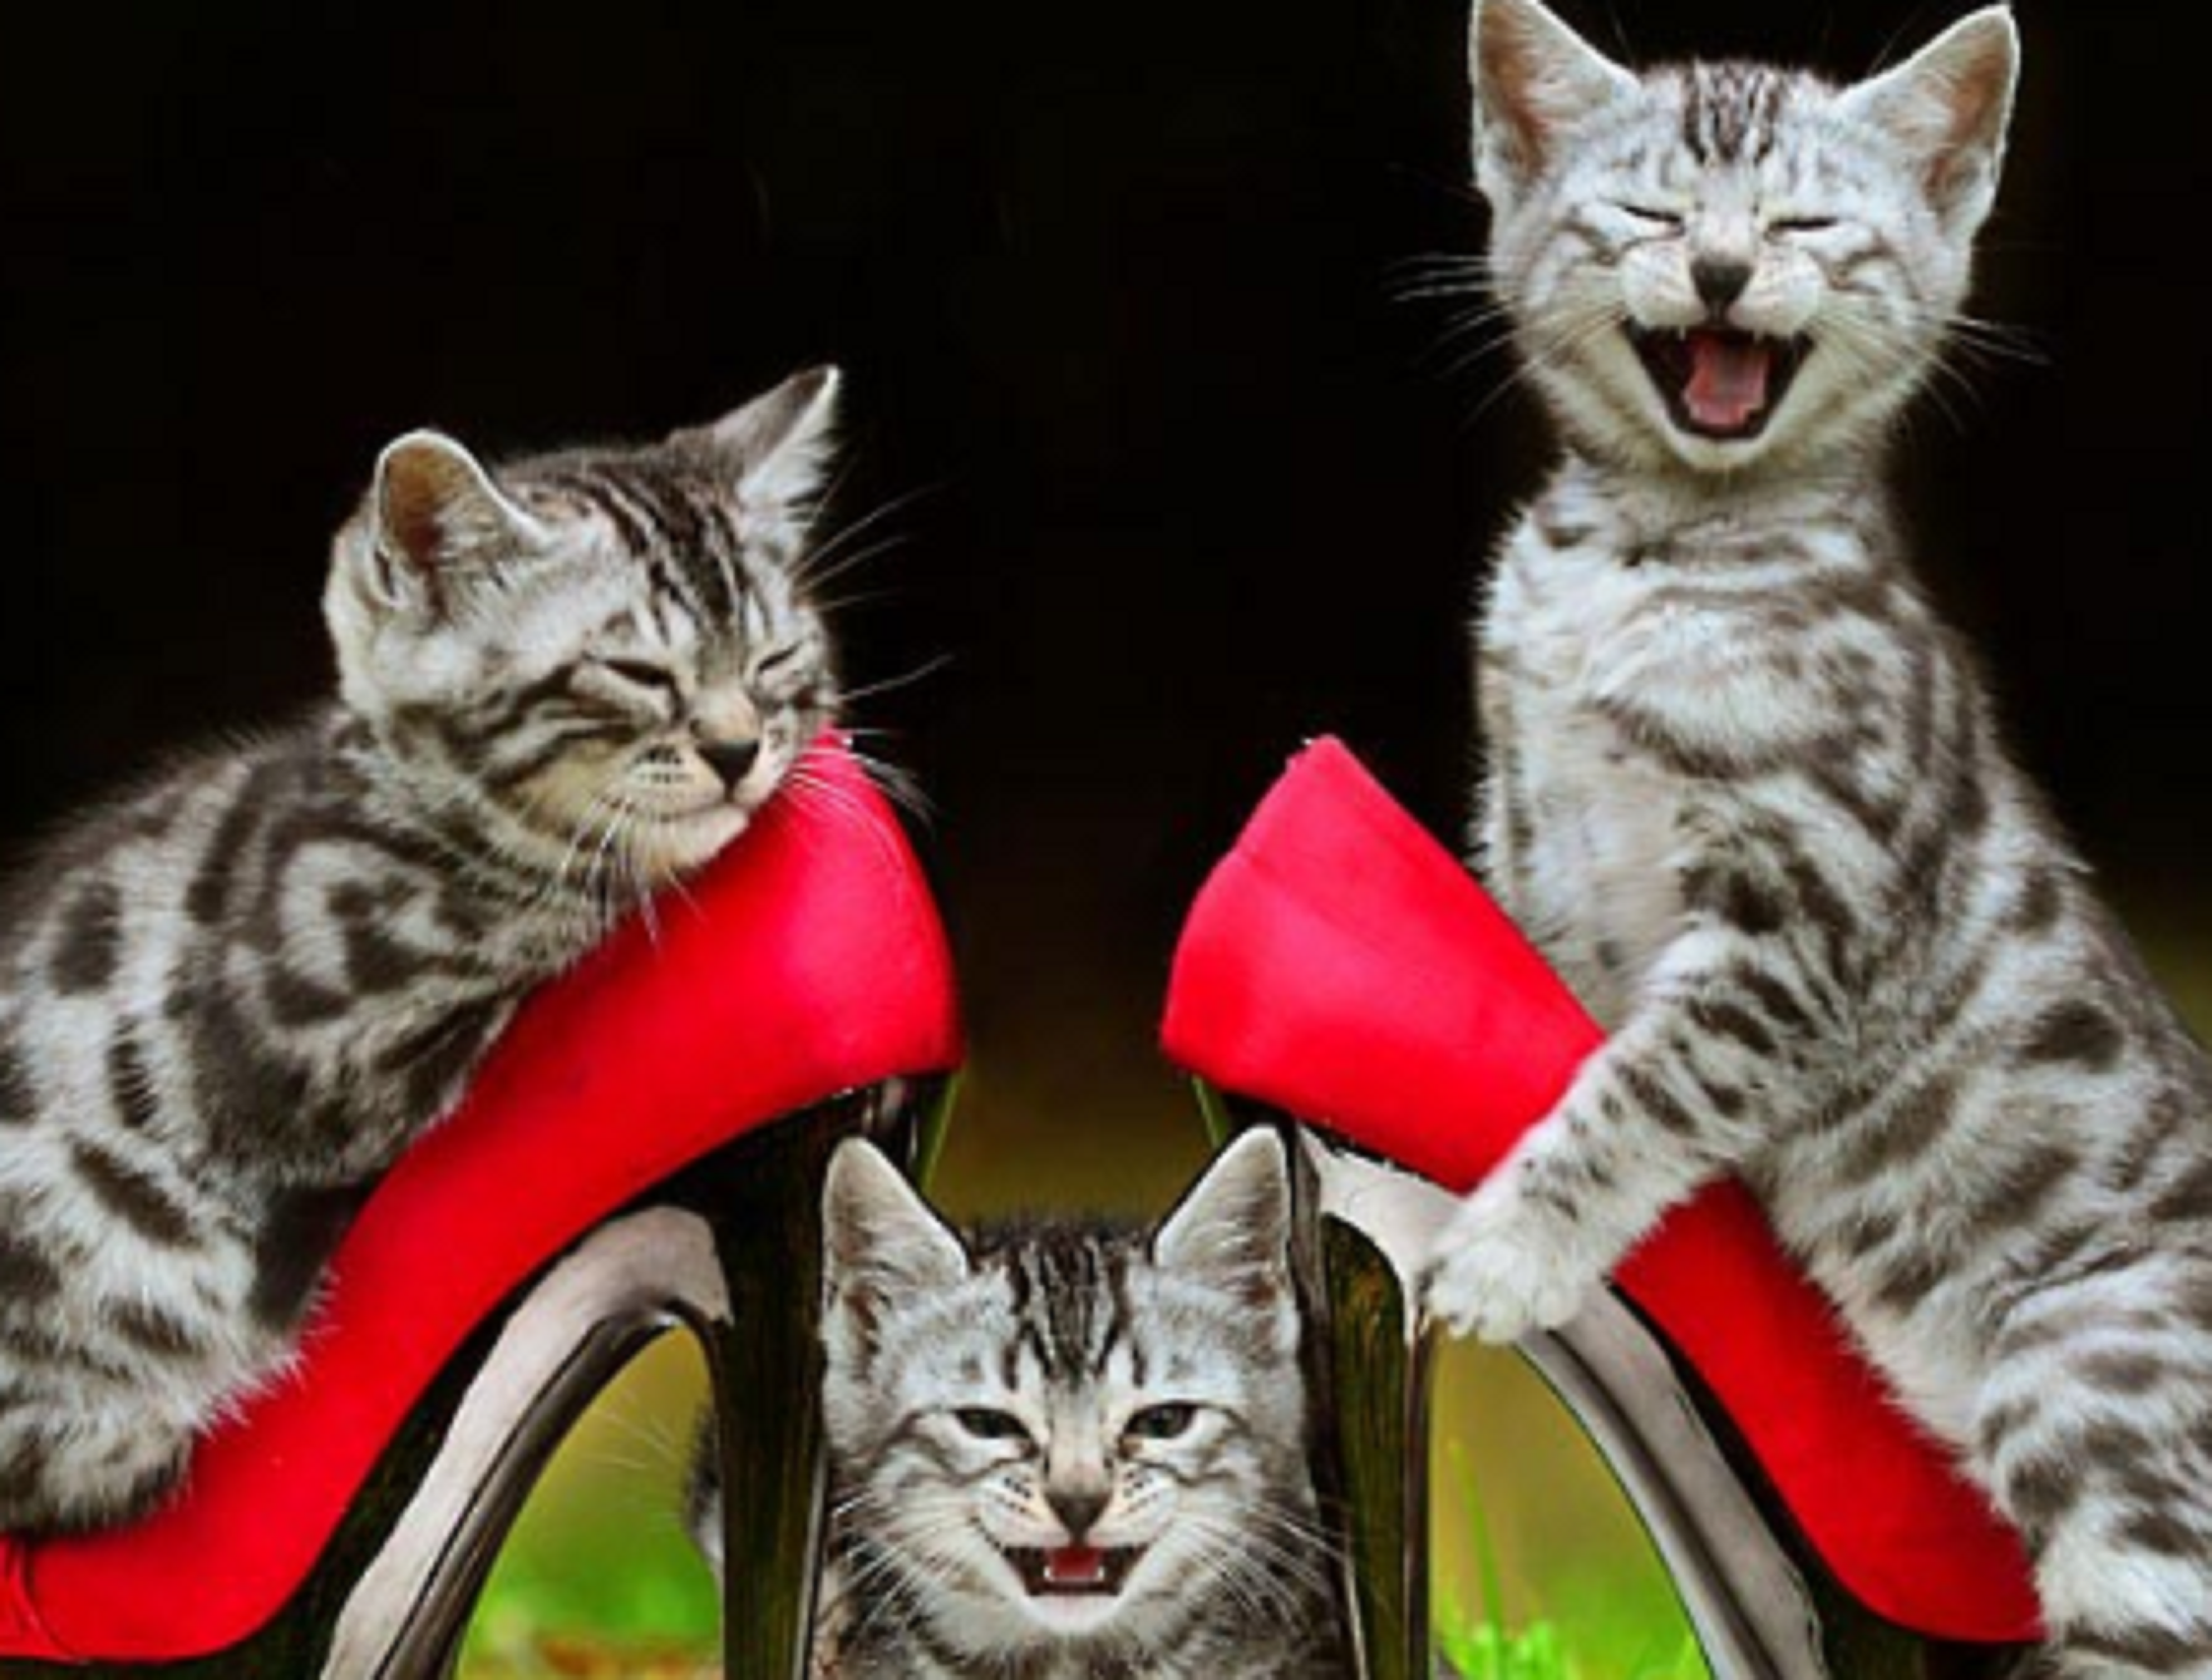 595bca18e6f36 Funny Pictures Of Cute Cats Wearing Red Shoes And Playing